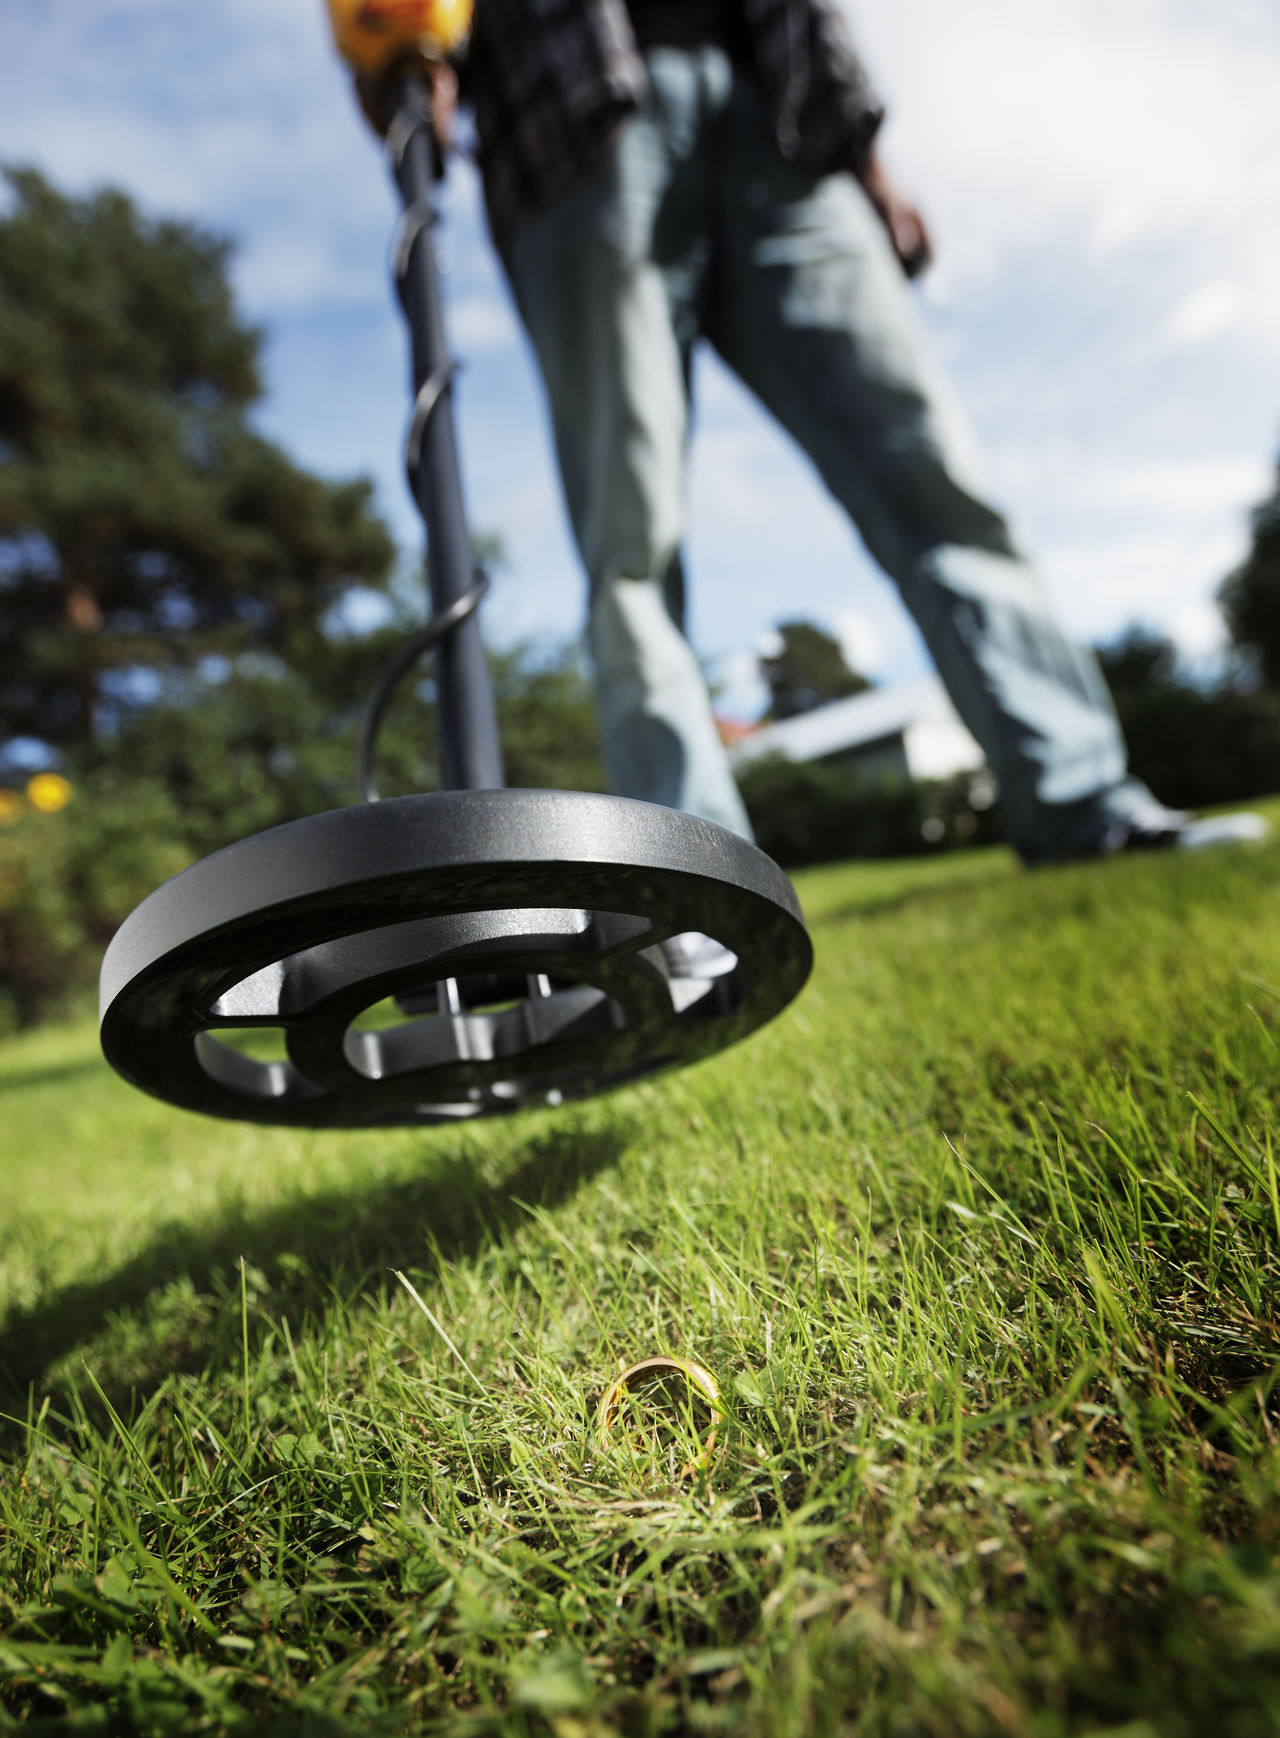 Man finding a gold ring in grass using a metal detector. Day Detector Finding New Frontiers Finds Found On The Roll Grass Grass Hidden Hobby Human Leg Jewelry Lawn Lost Low Angle View Metal Metal Detector One Person Outdoors Ring Search Searching Valuable